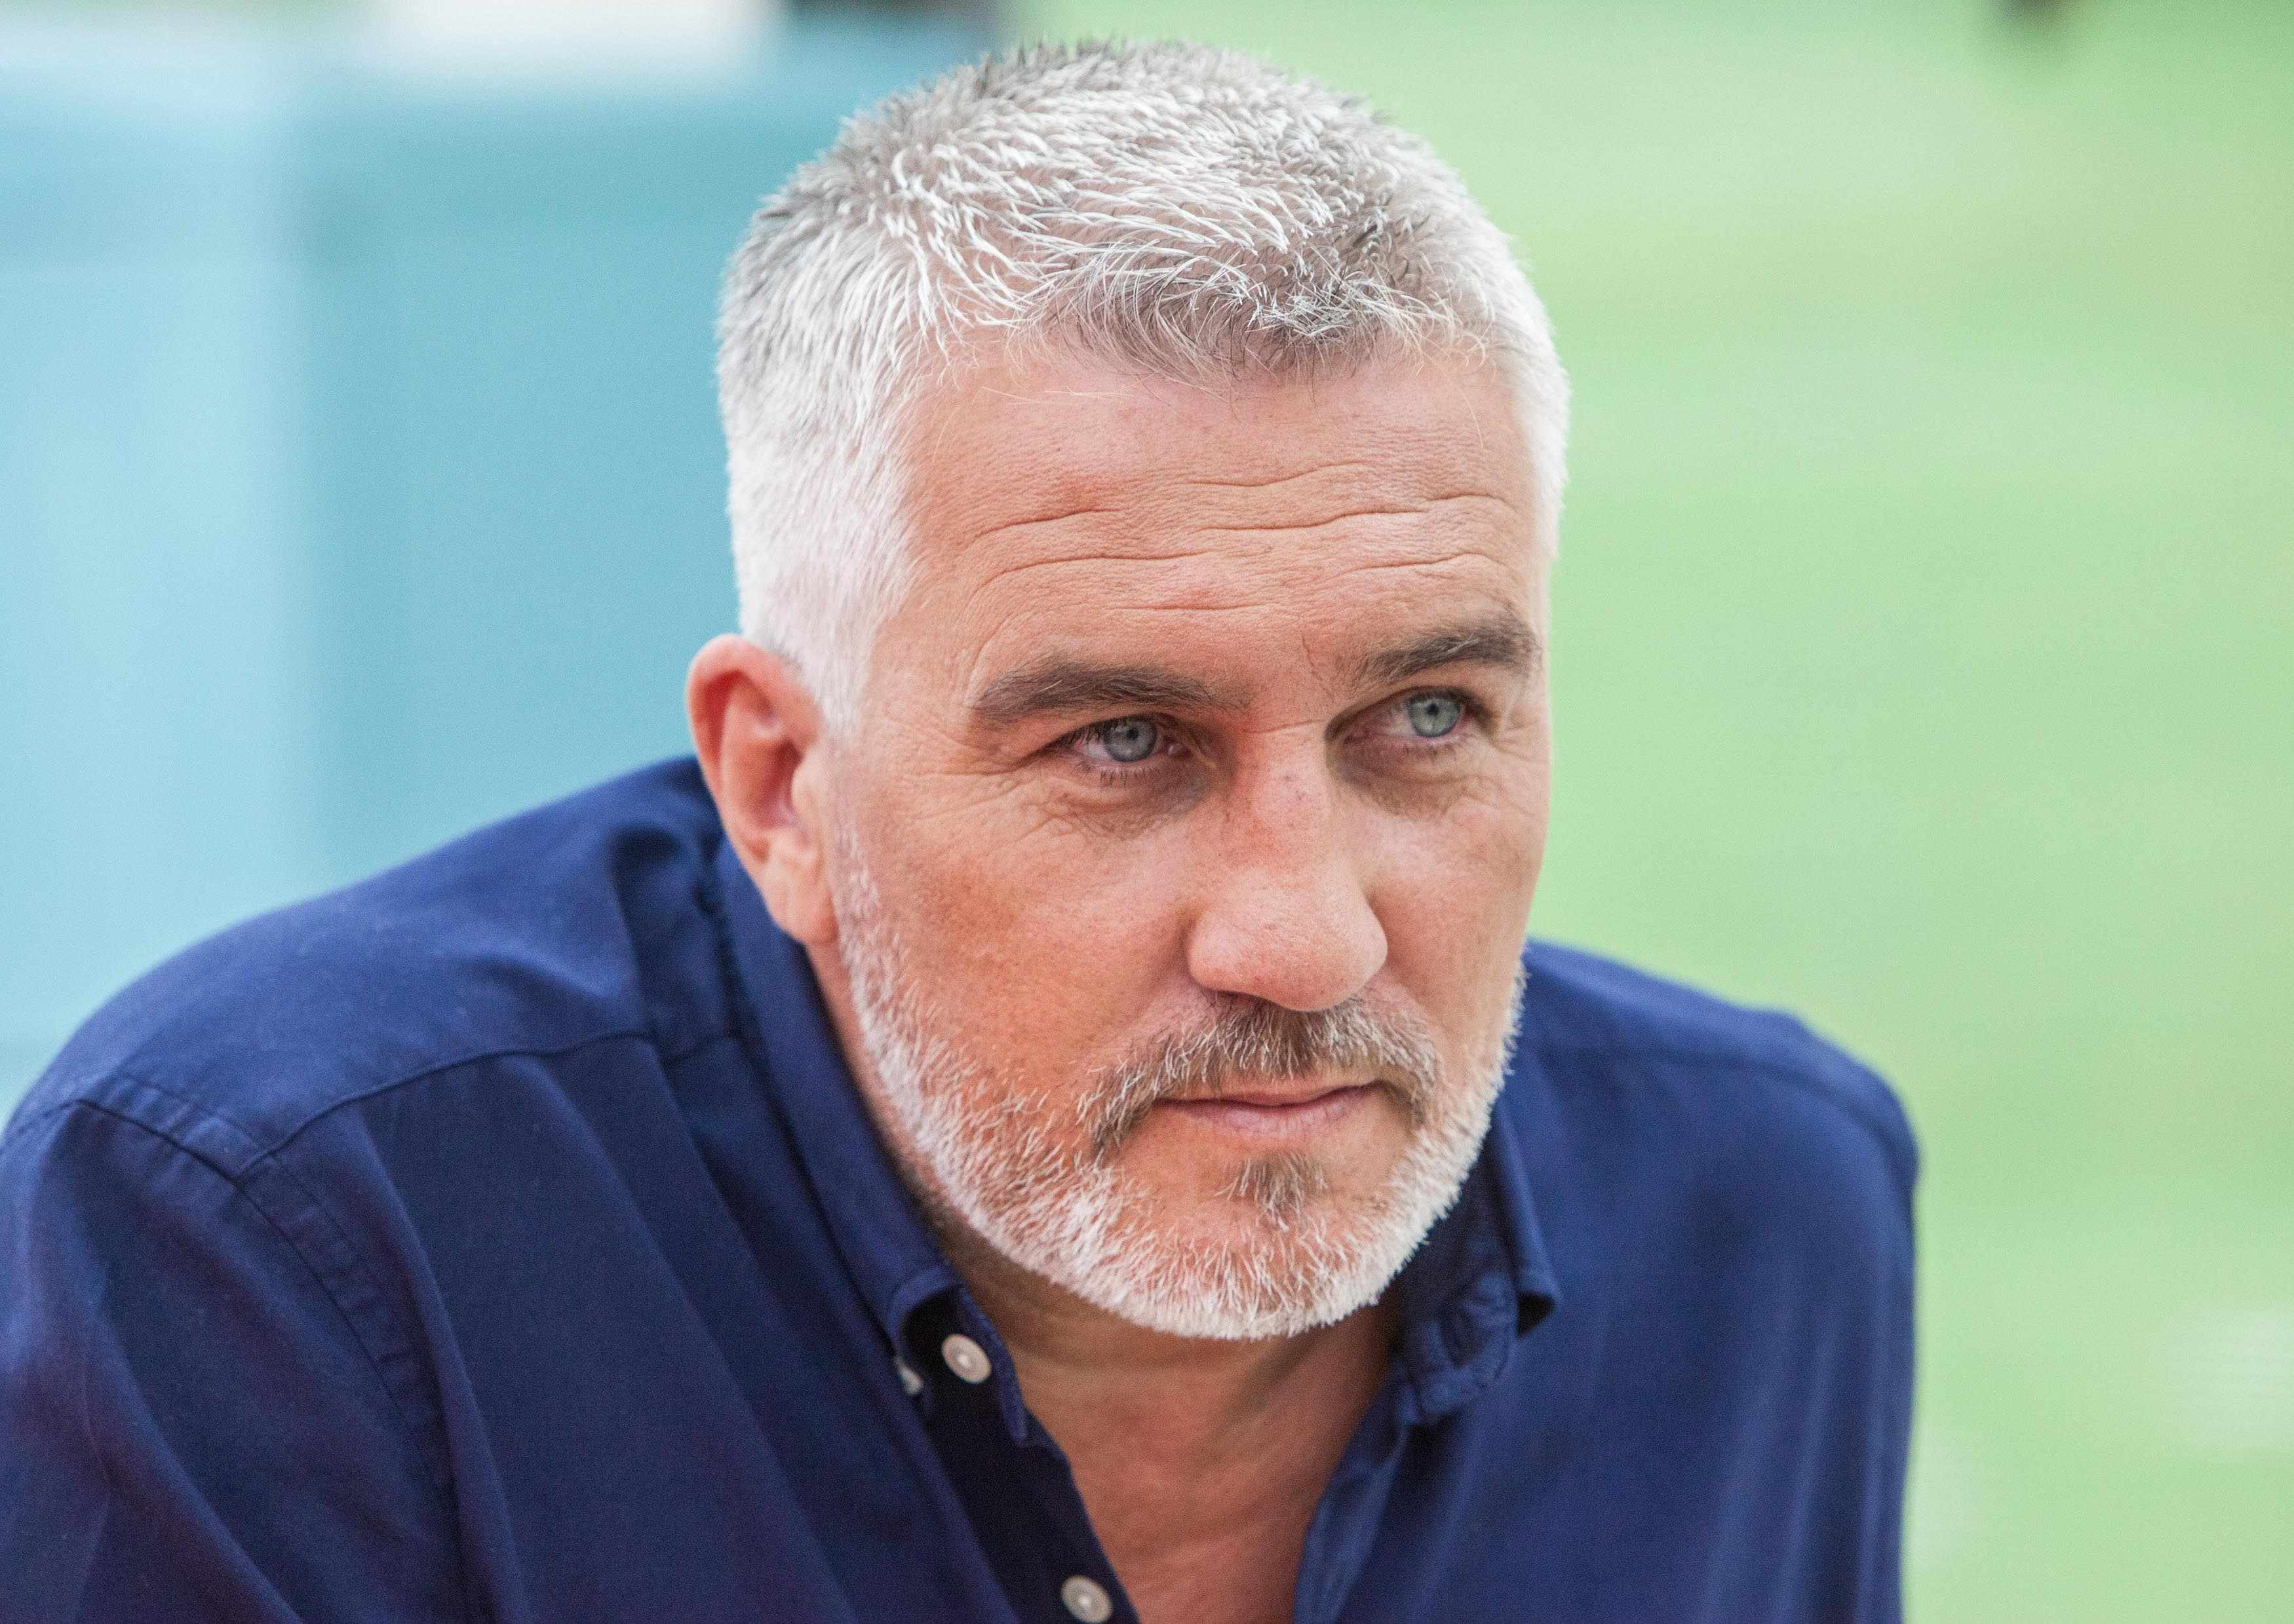 Paul Hollywood, Bake Off (C4, EH)